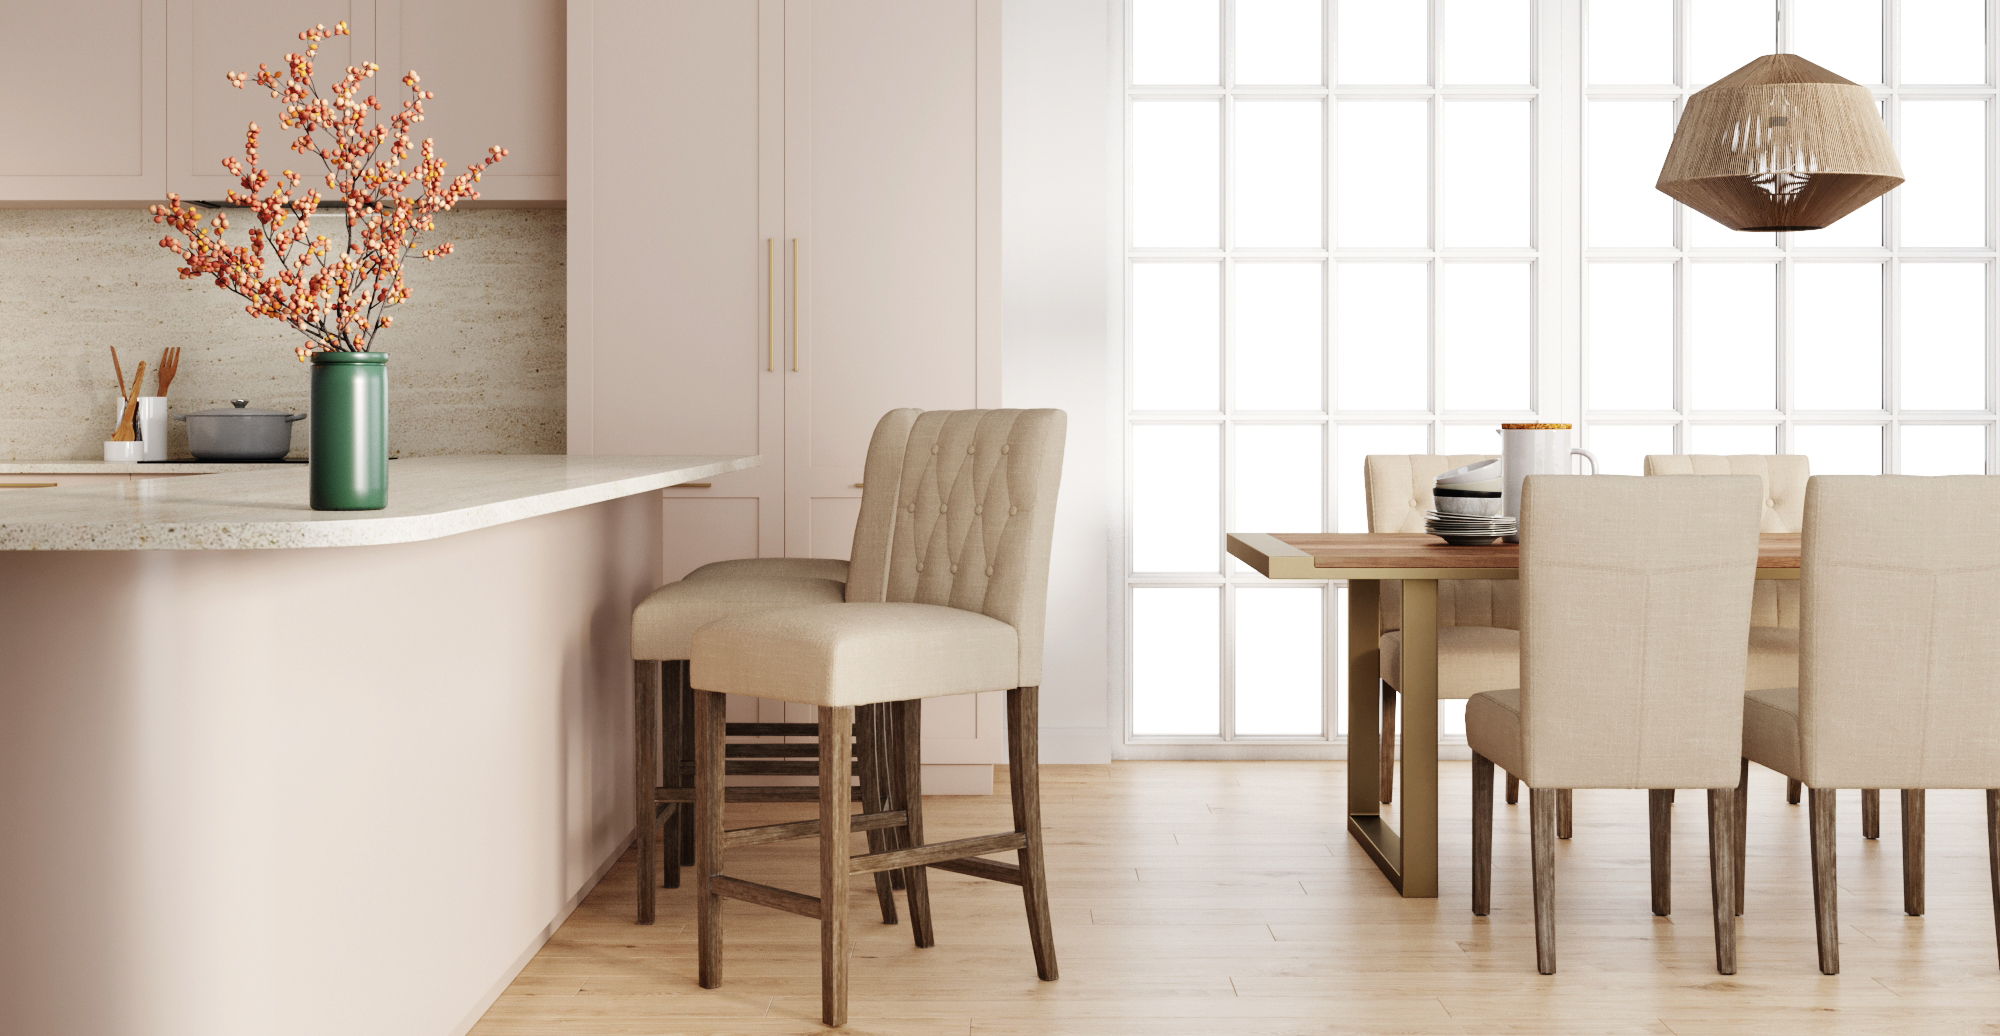 Brosa Espen® Bar Stool styled in classic traditional kitchen